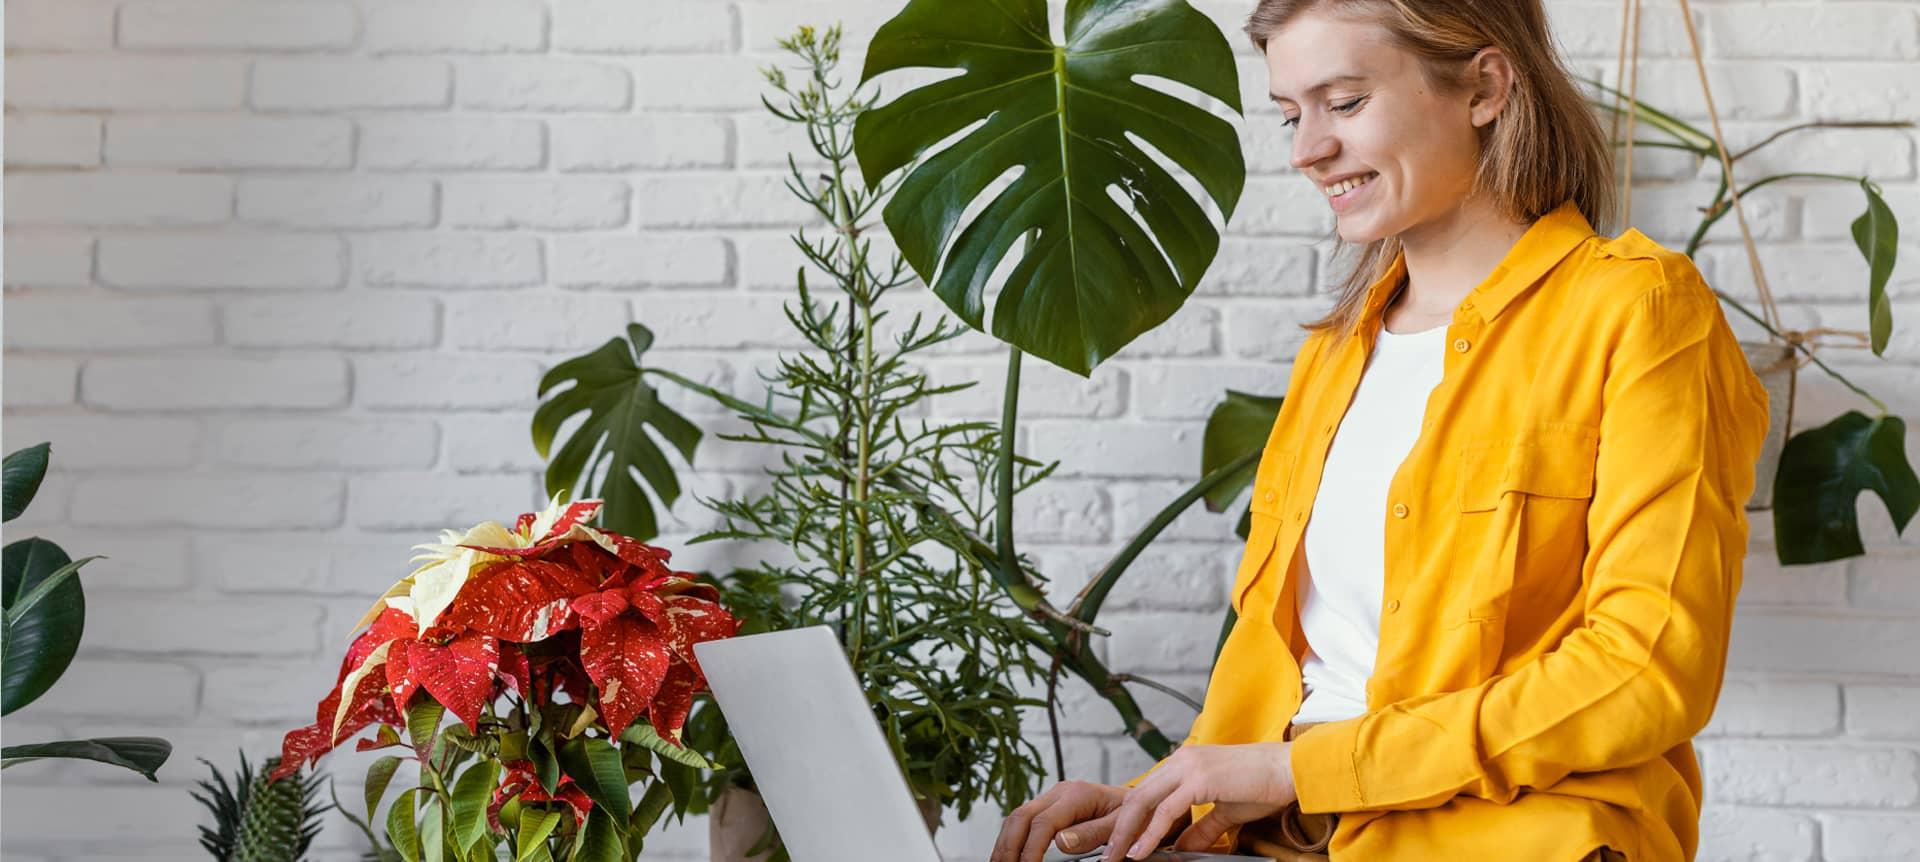 A female employee with blonde hair, wearing a yellow jacket, is working on her laptop.